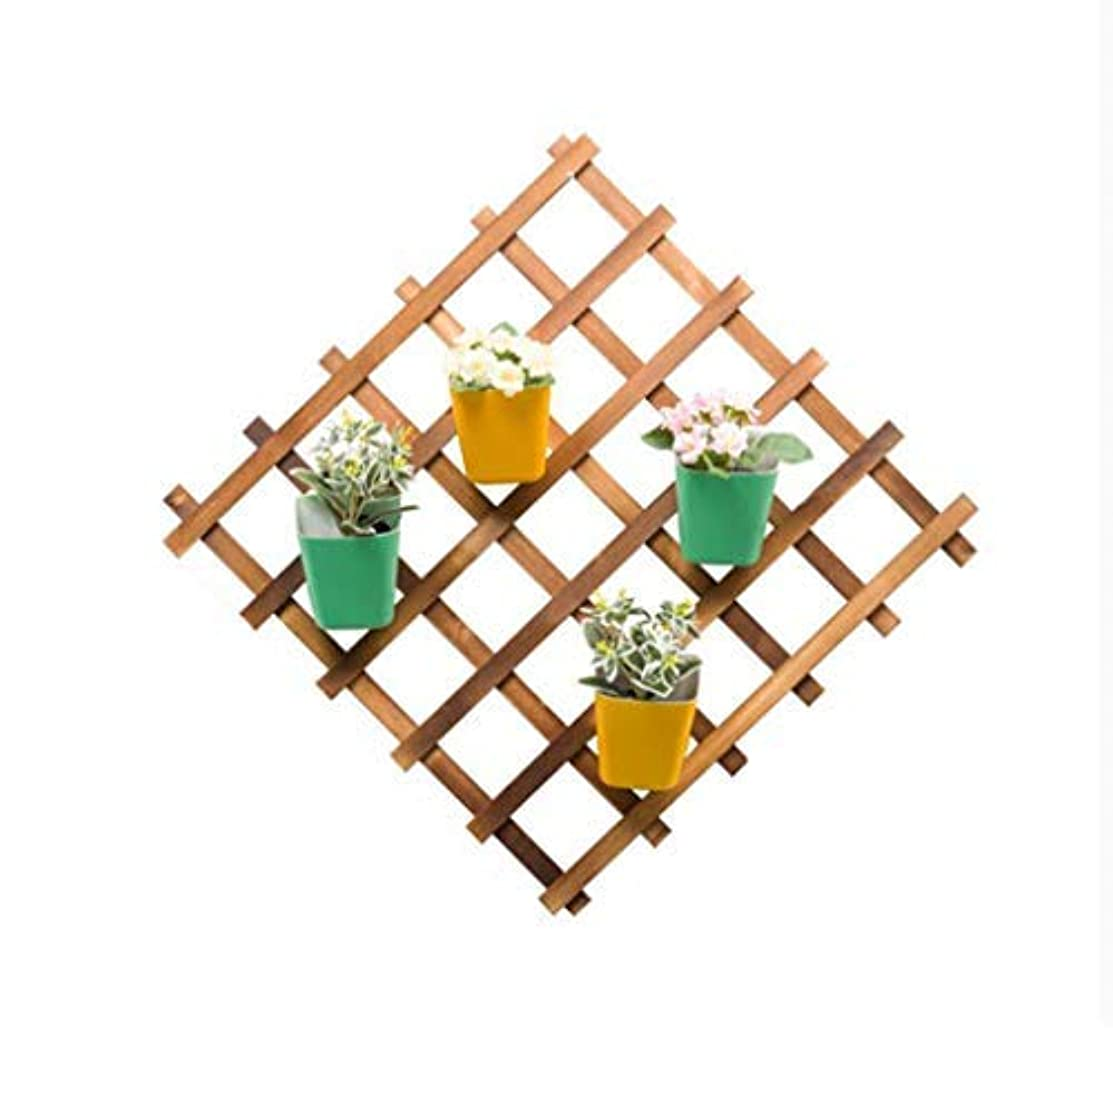 ZHAS Decorative Plant Stand Wall-Mounted Foldable Wooden Plant Pots Rack Shelf Unit Display Succulent Stand Flower Shelf Planter Basket for Patio Indoor Outdoor Yard